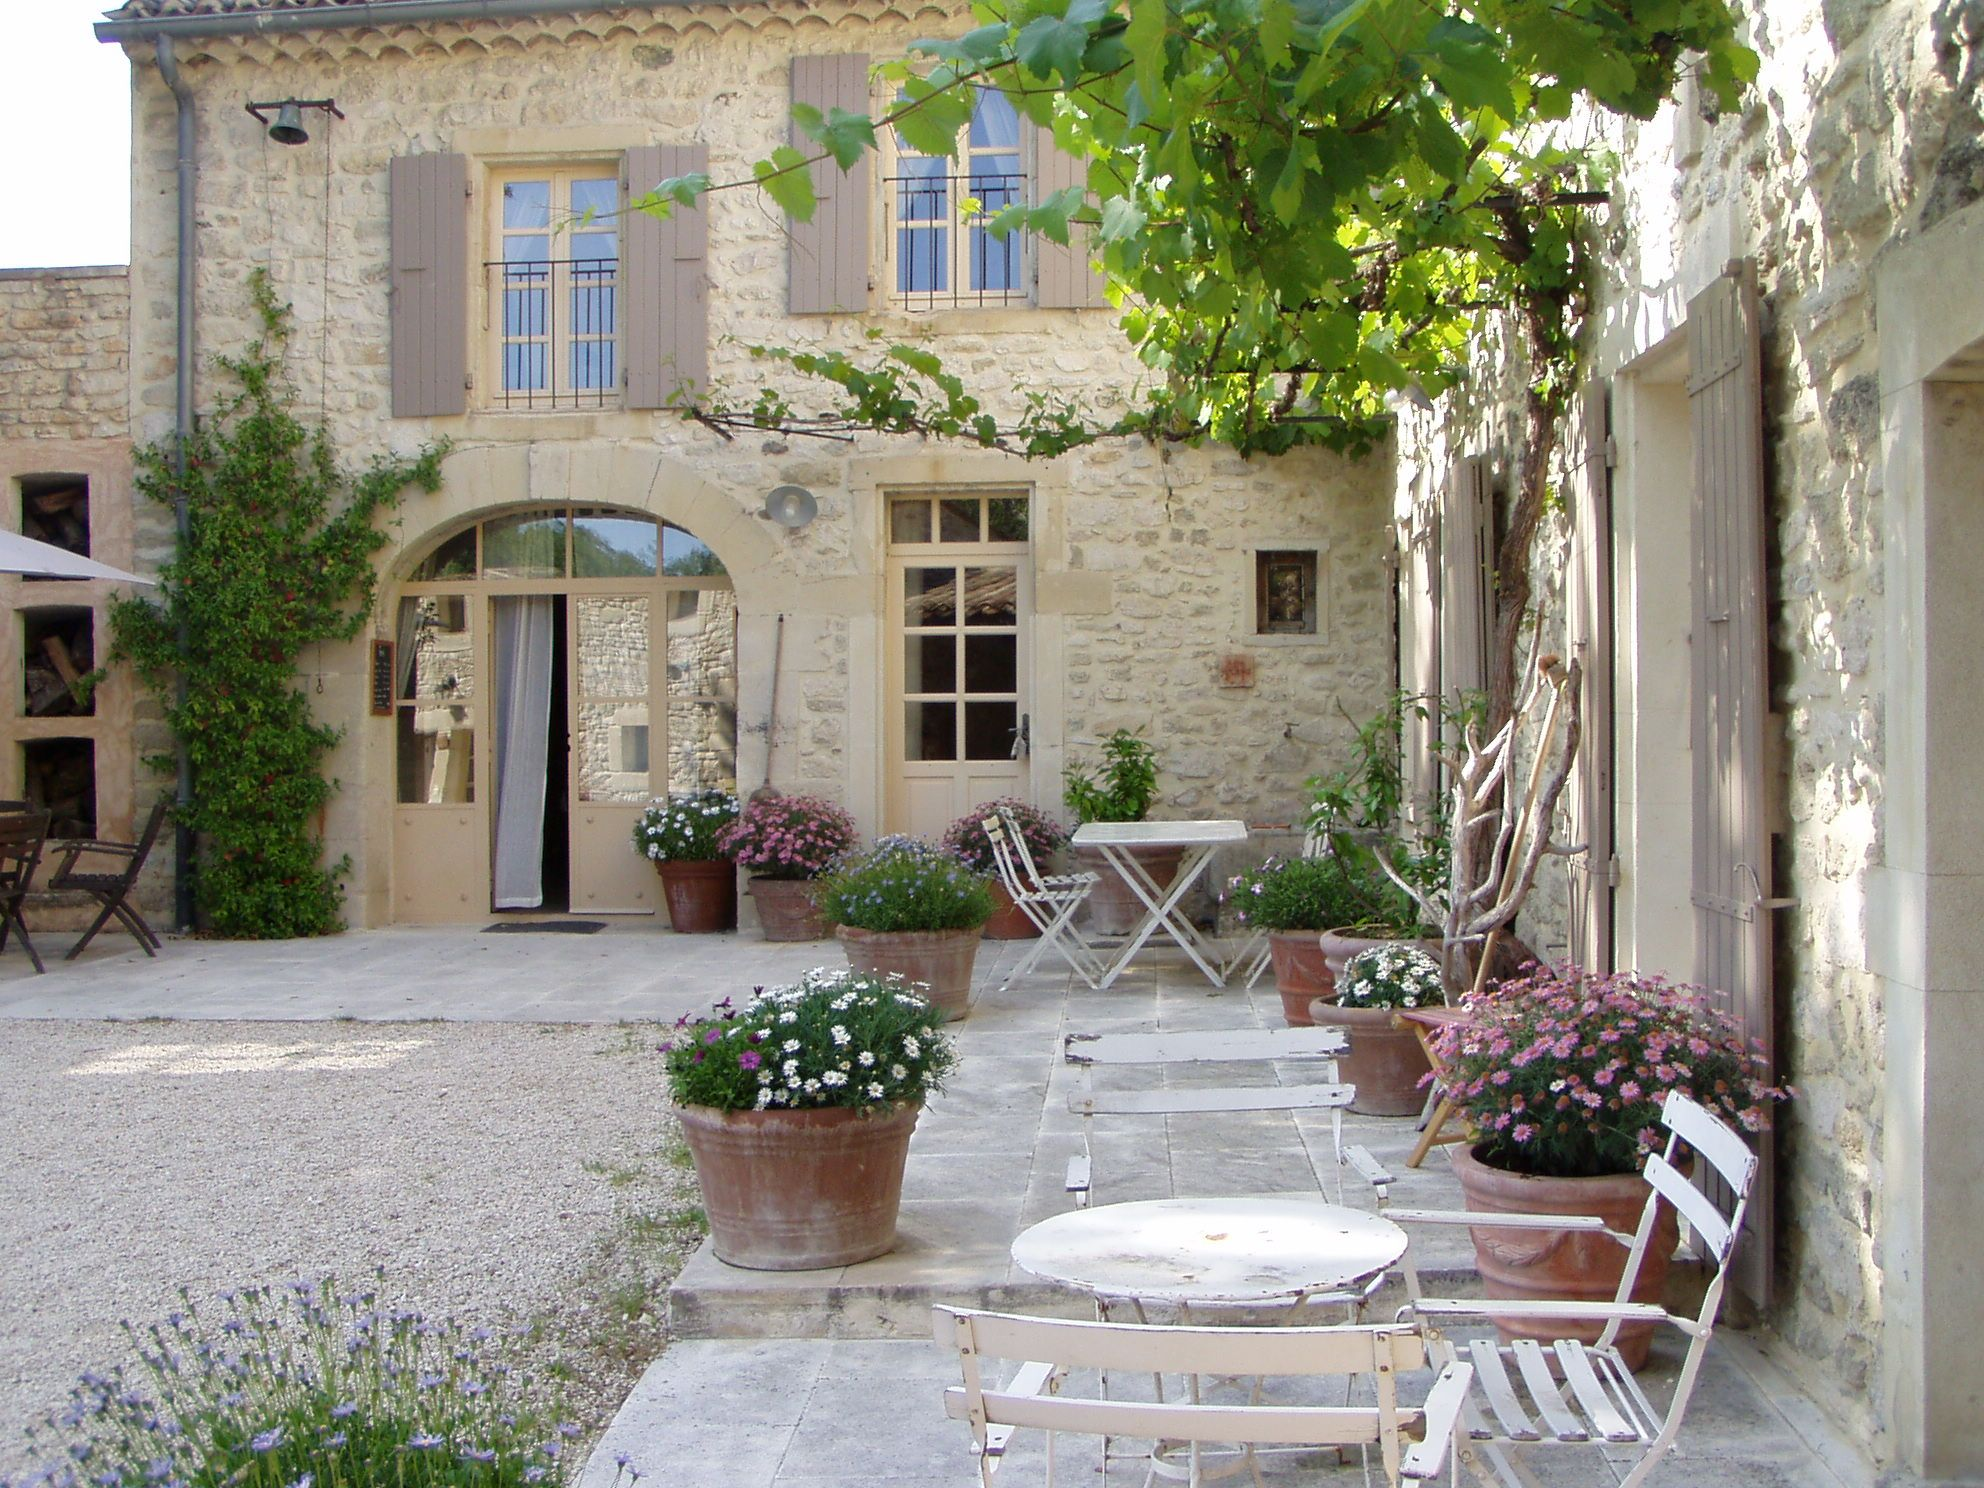 Lada Outdoor Küche Lady Jill Mueller Courtyards Pinterest Provence